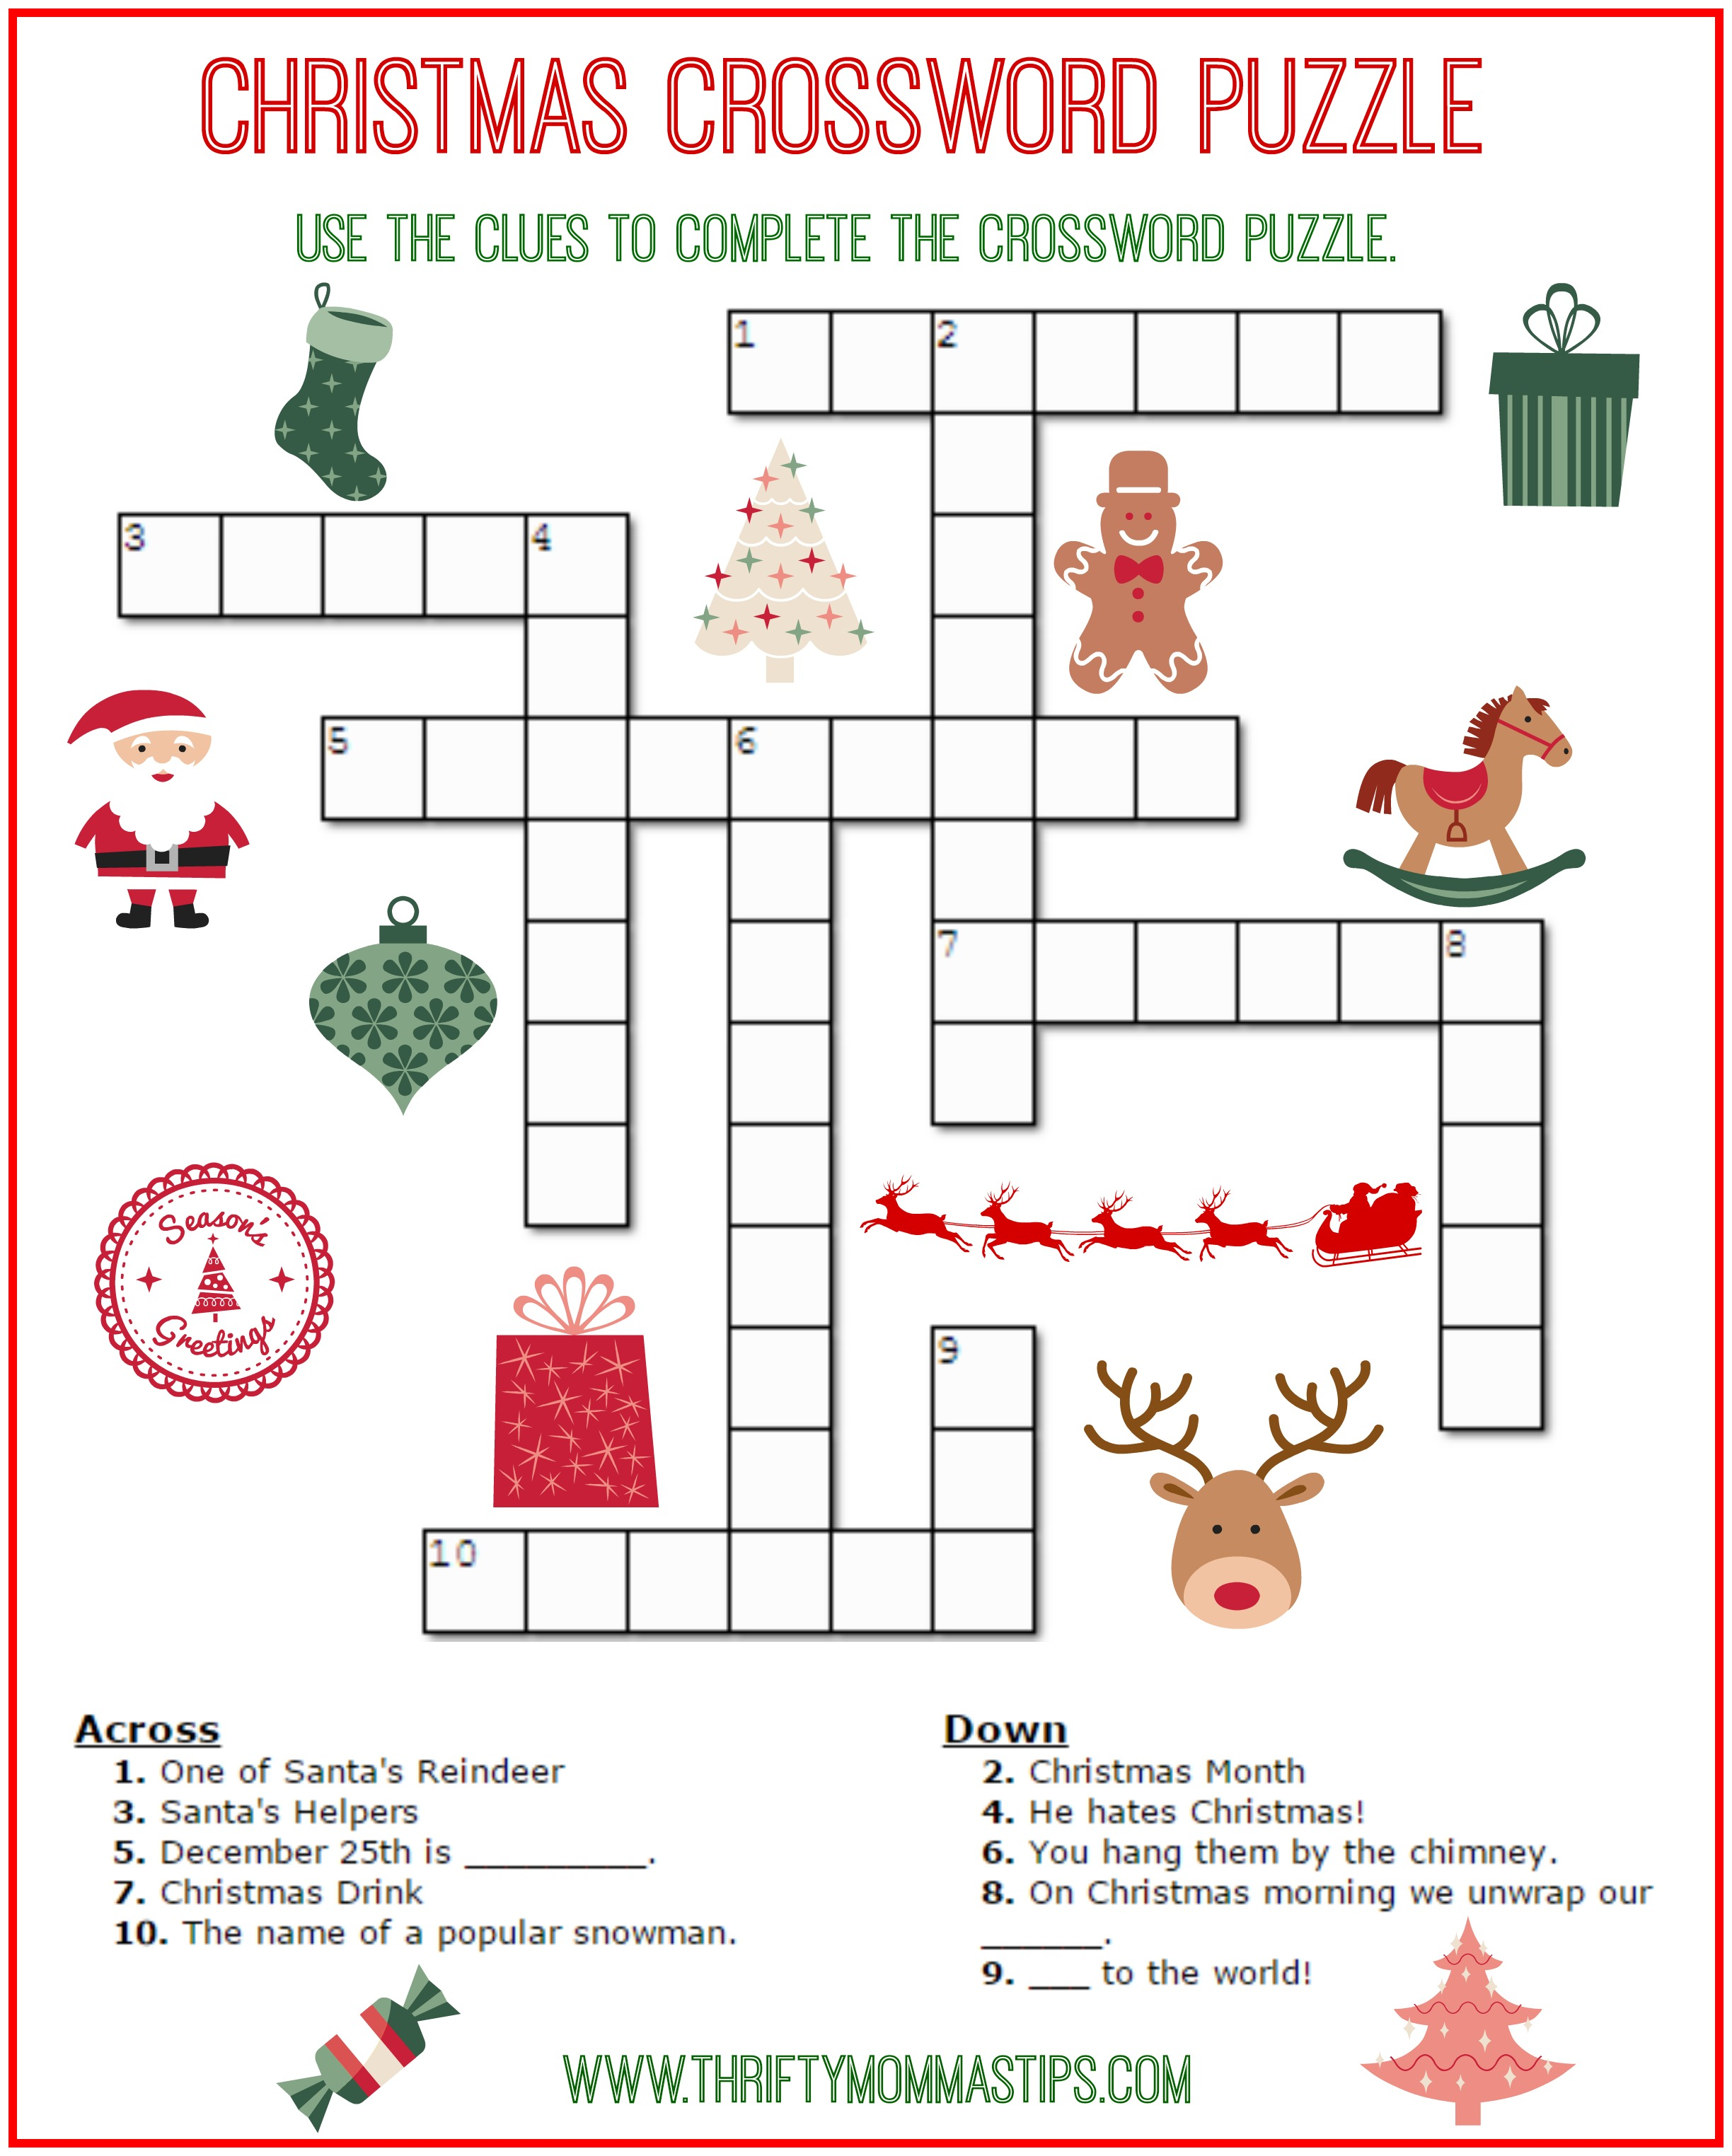 photo about Christmas Crosswords Printable named Xmas Crossword Puzzle Printable - Thrifty Mommas Strategies